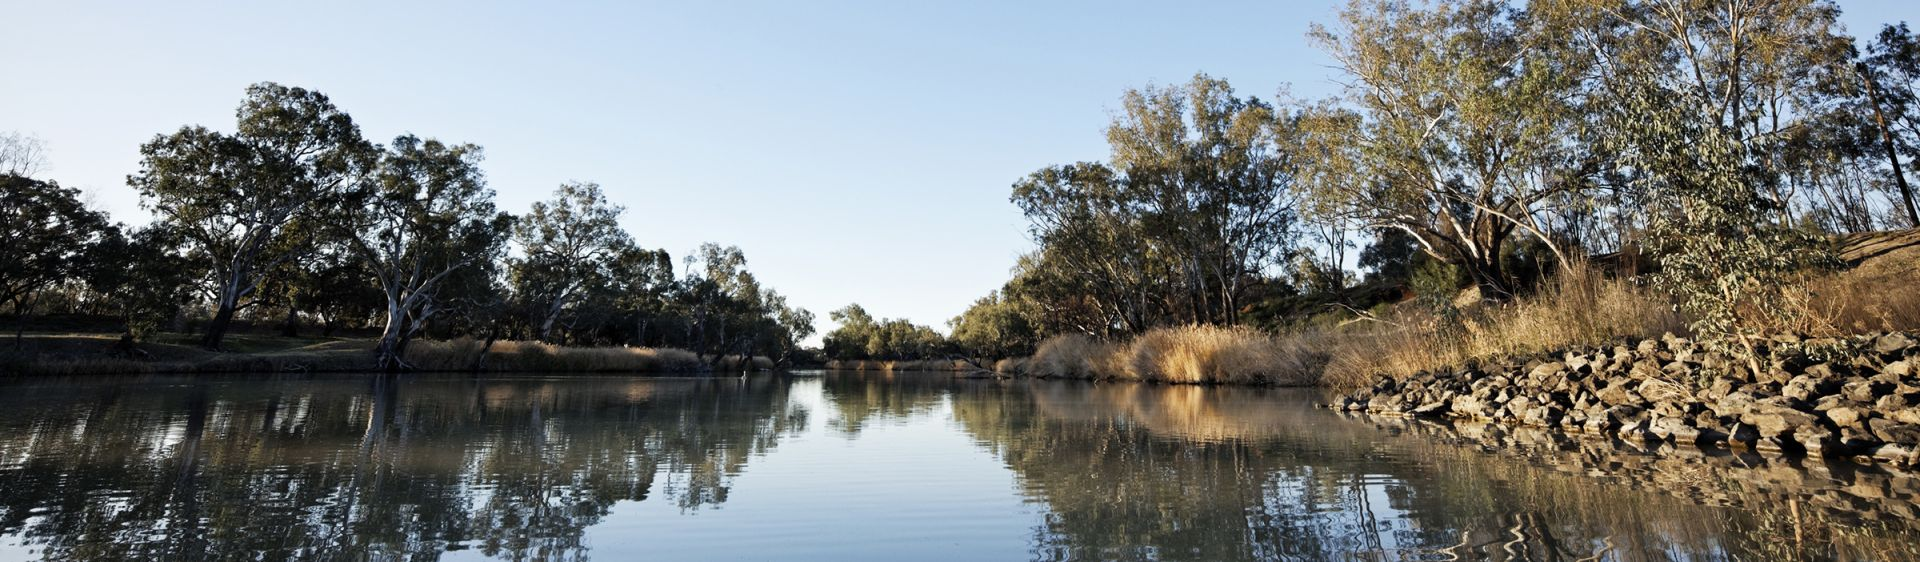 The Barwon River, home to the traditional Aboriginal fish traps in Brewarrina